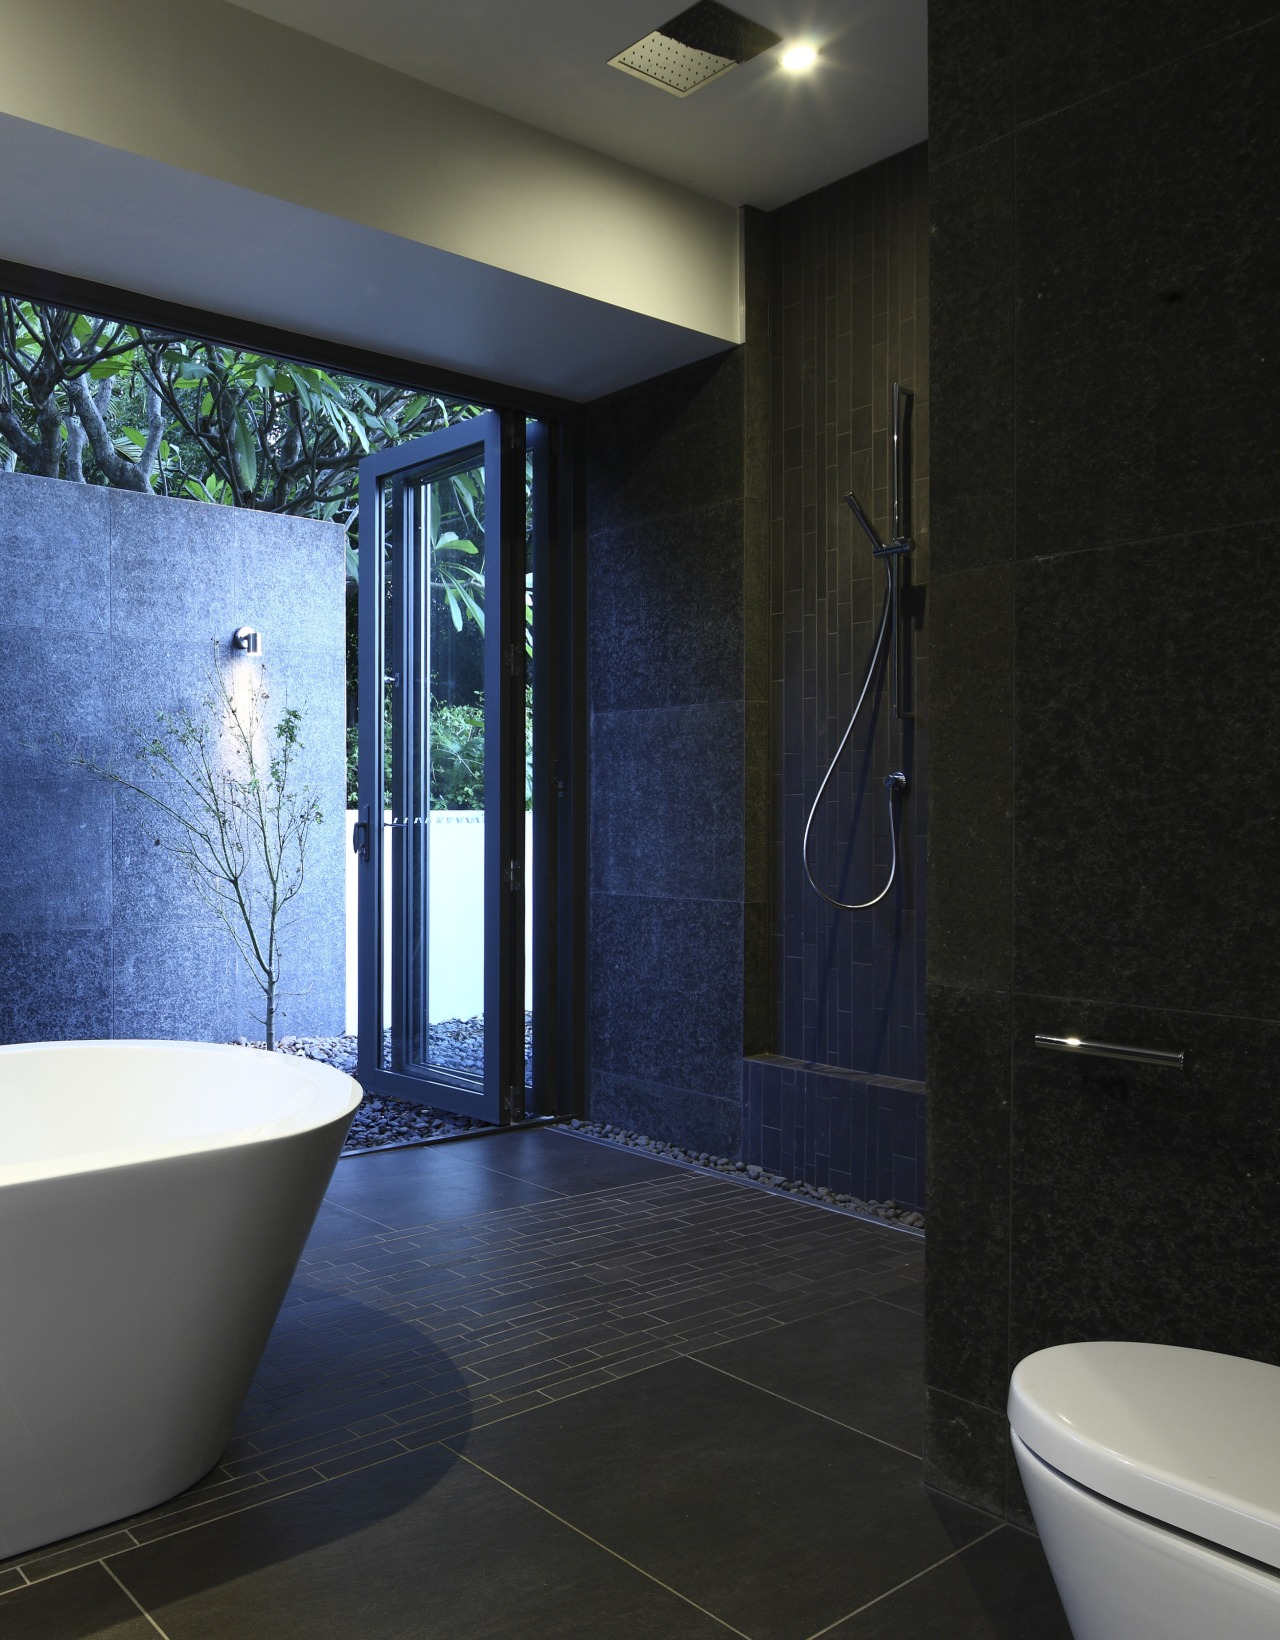 View of dark-toned bathroom with white tub. architecture, bathroom, ceiling, daylighting, floor, flooring, glass, home, interior design, room, tile, wall, black